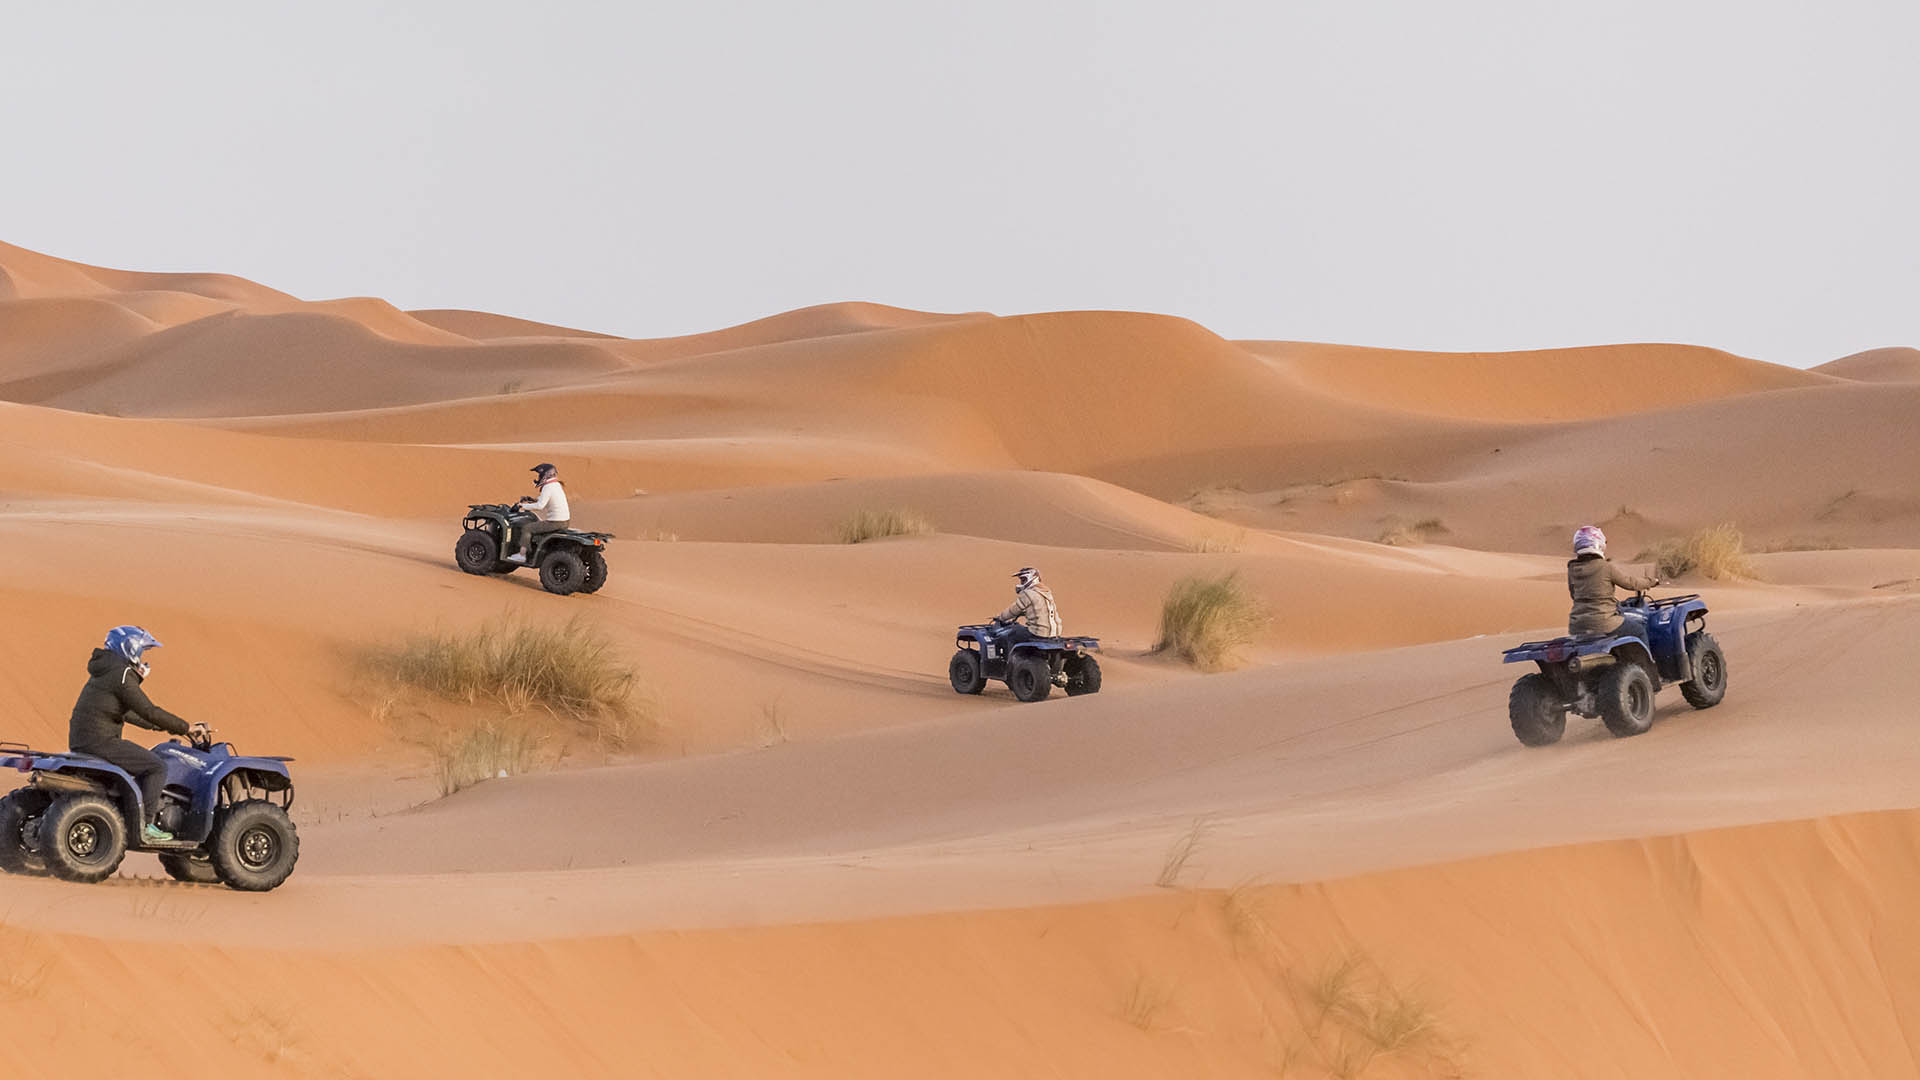 Desert TripAdventure Holidays in Morocco are available year round and can be experience by 4x4 Off road, Desert Quad or Camel Trek in the Erg Chebbi Dunes.